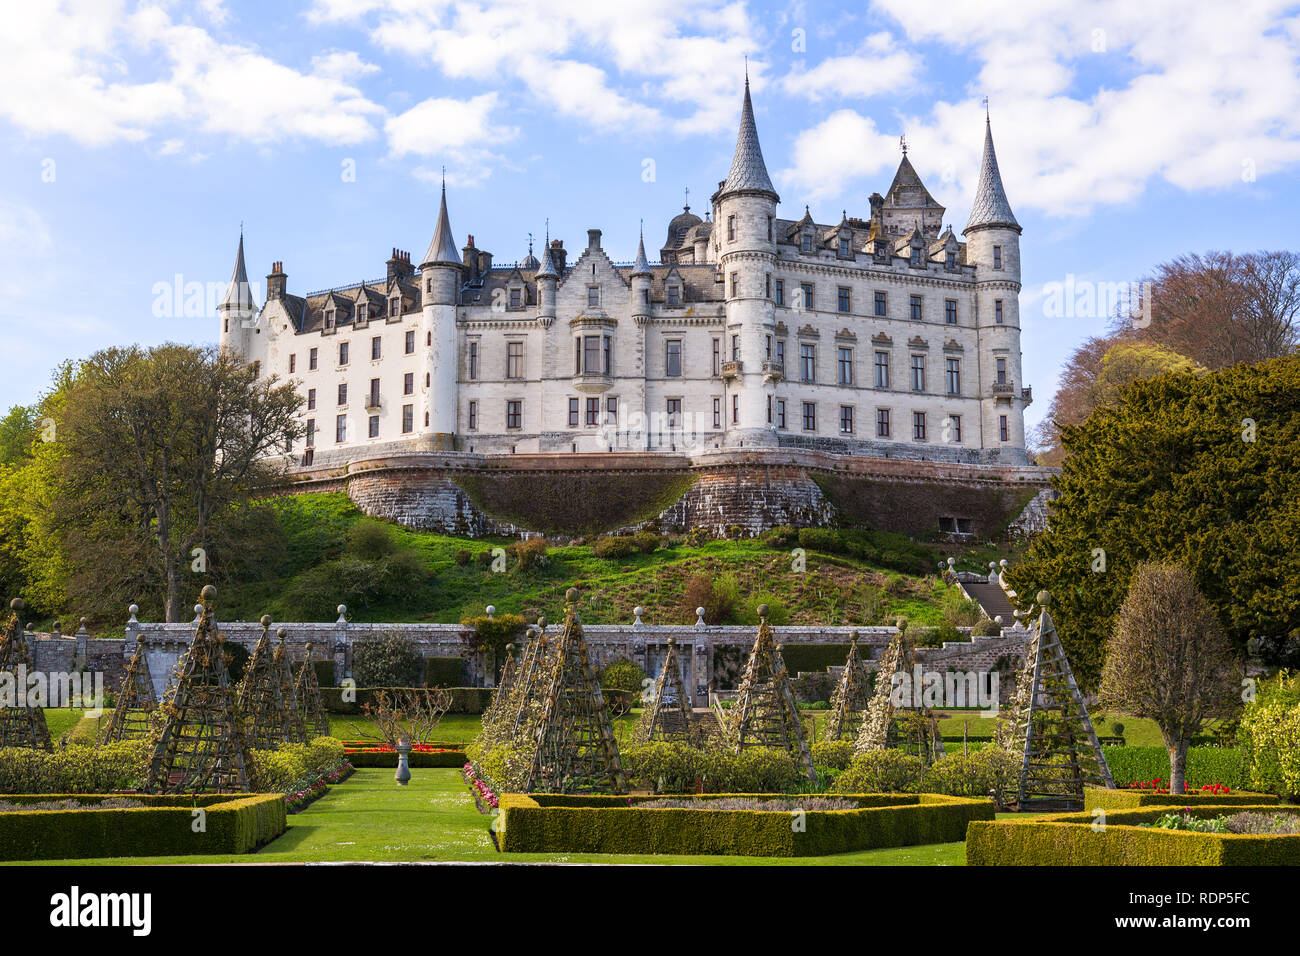 Old Dunrobin castle in the background and stunning garden in the  foreground 9a4d71036b3e2